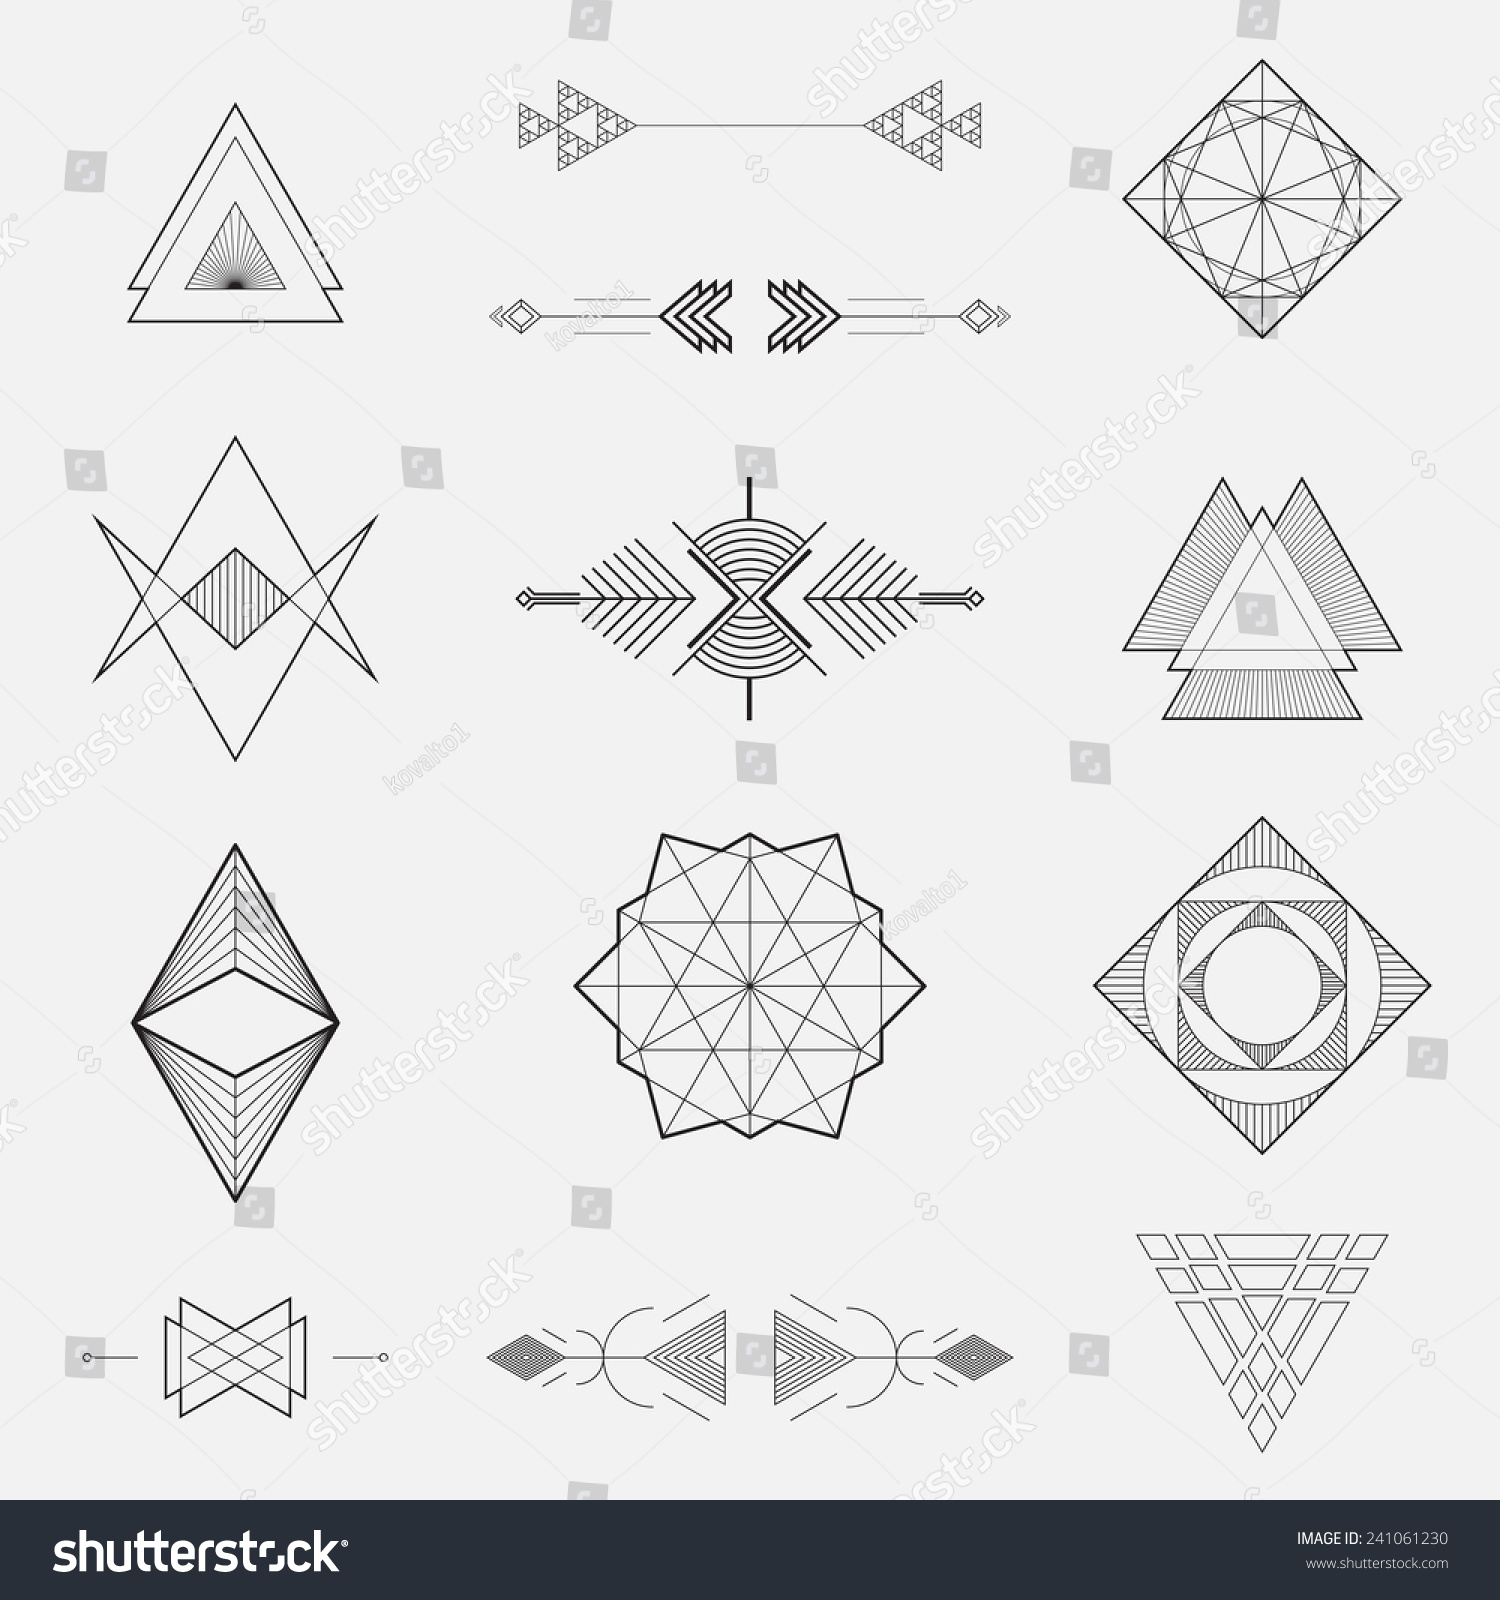 Line And Shape Design : Geometric patterns triangle vector